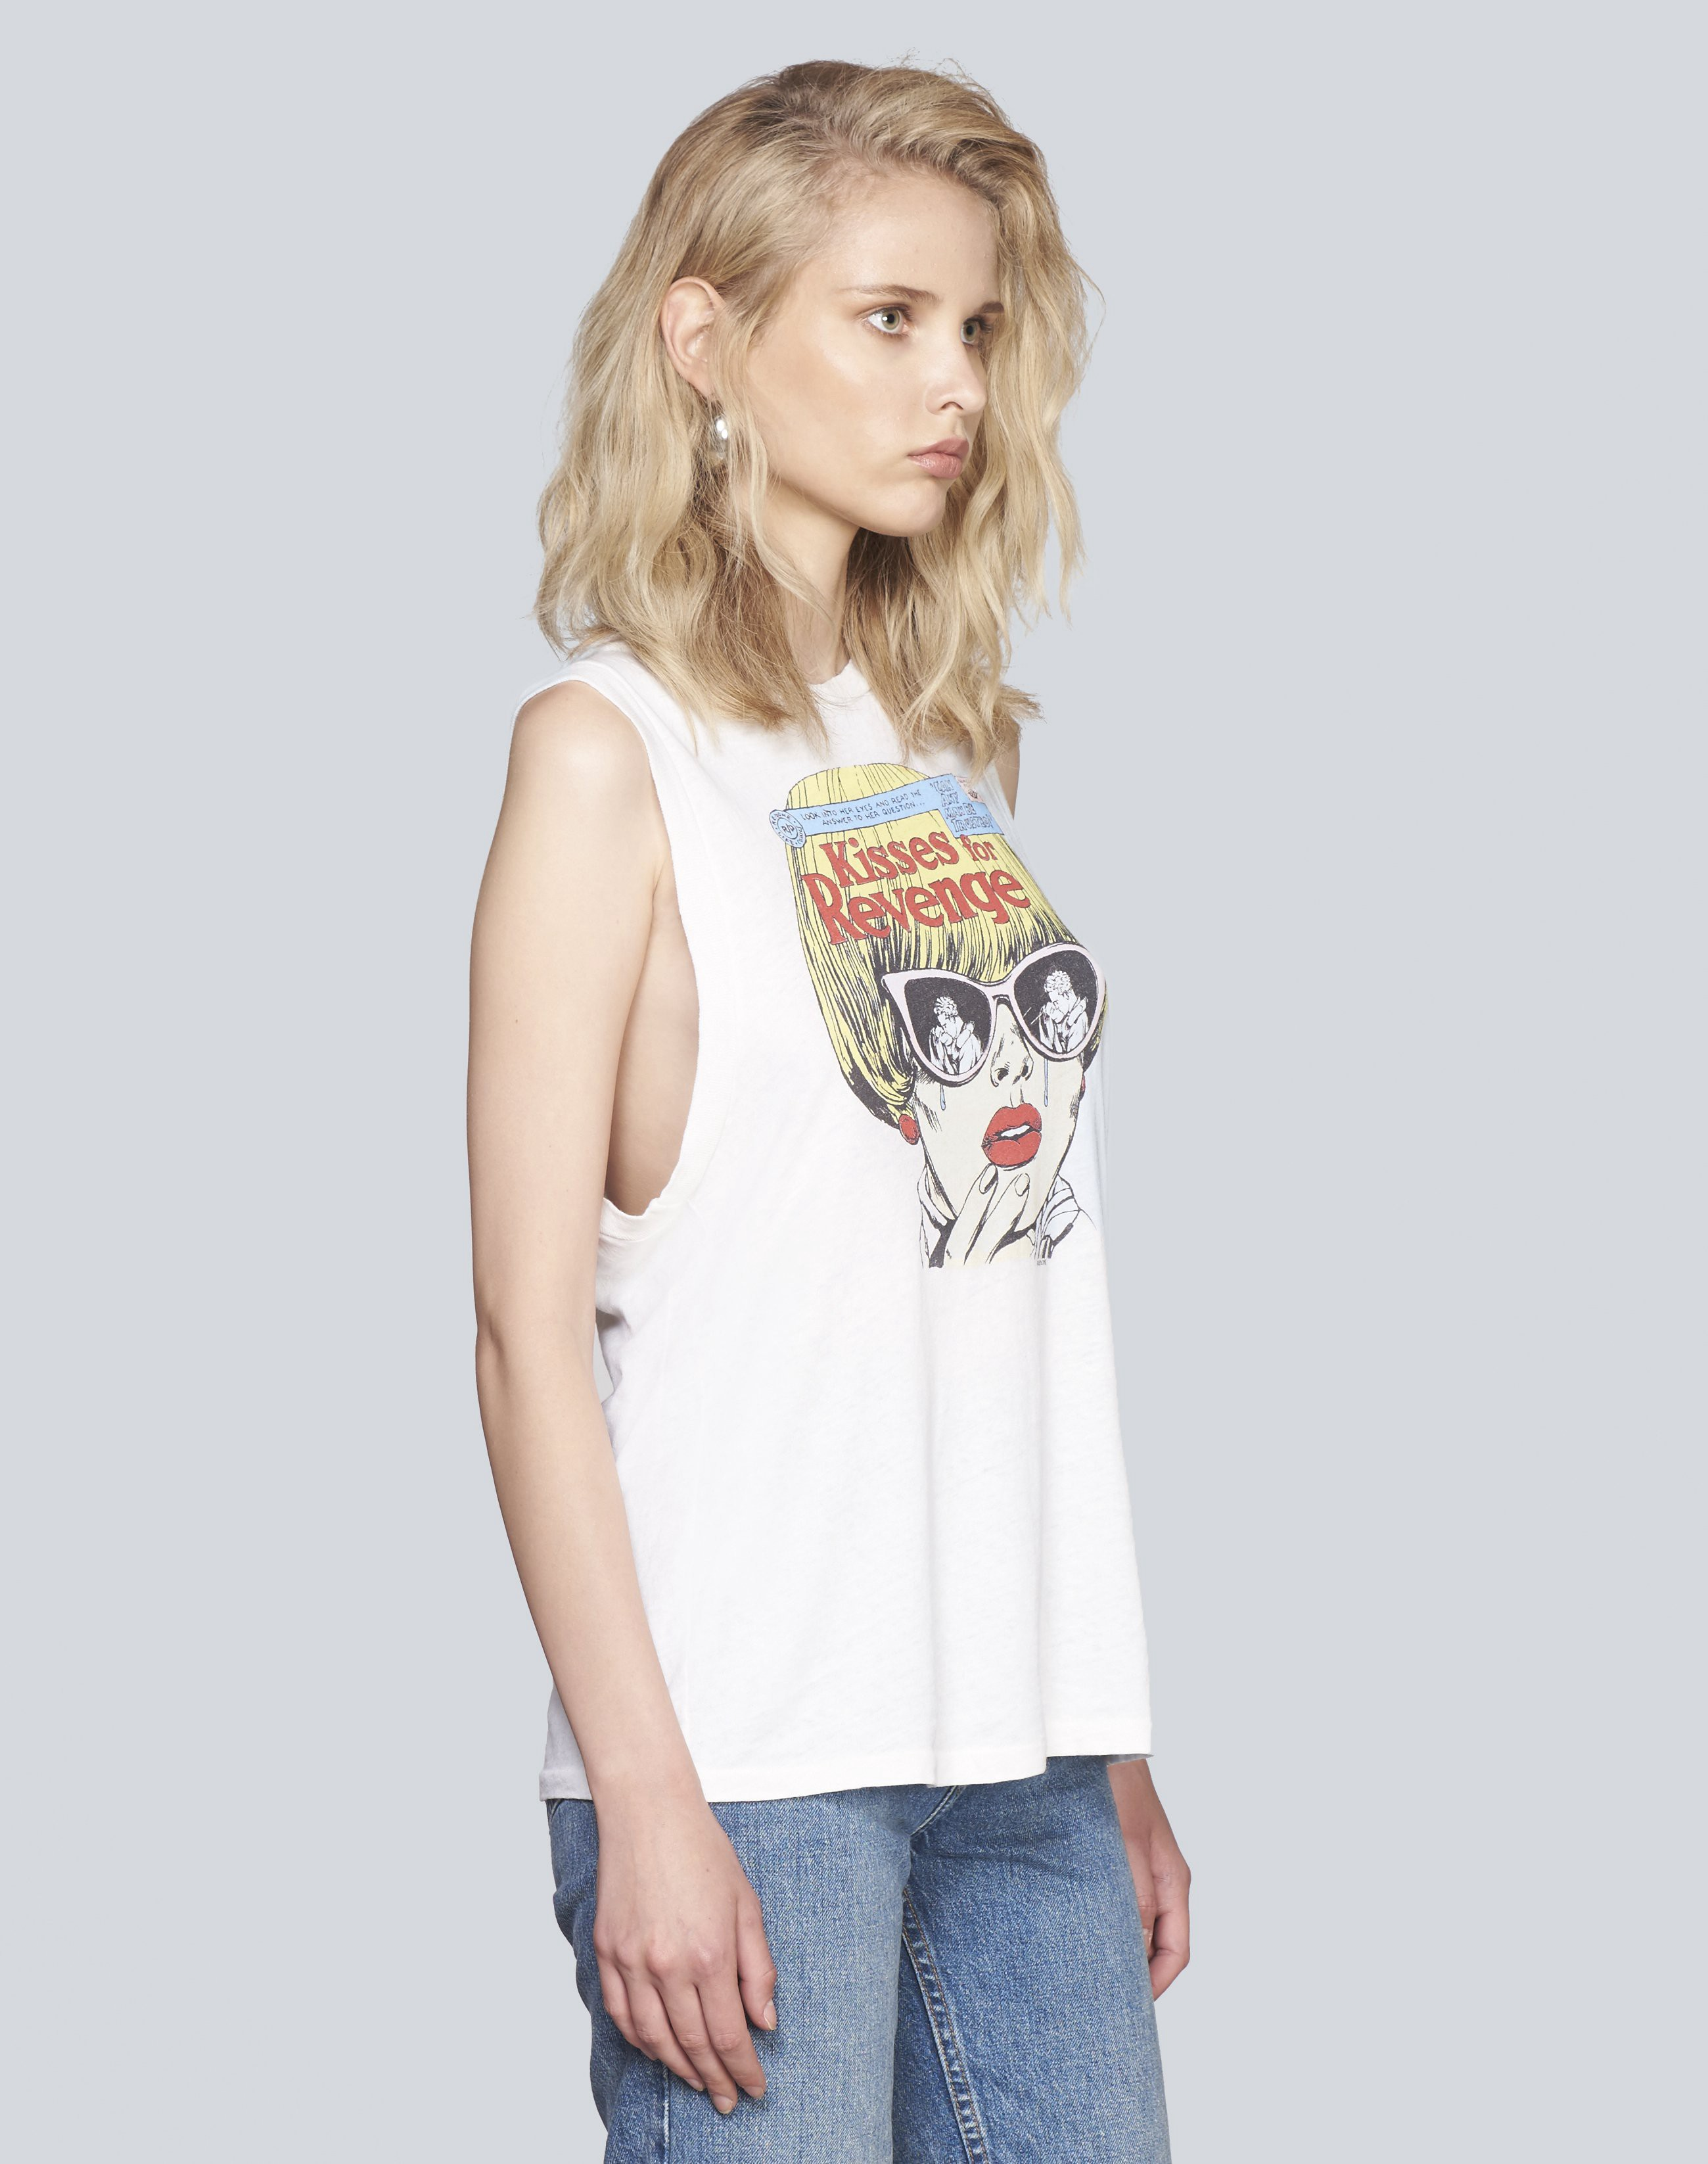 22+ Womens graphic muscle tee inspirations